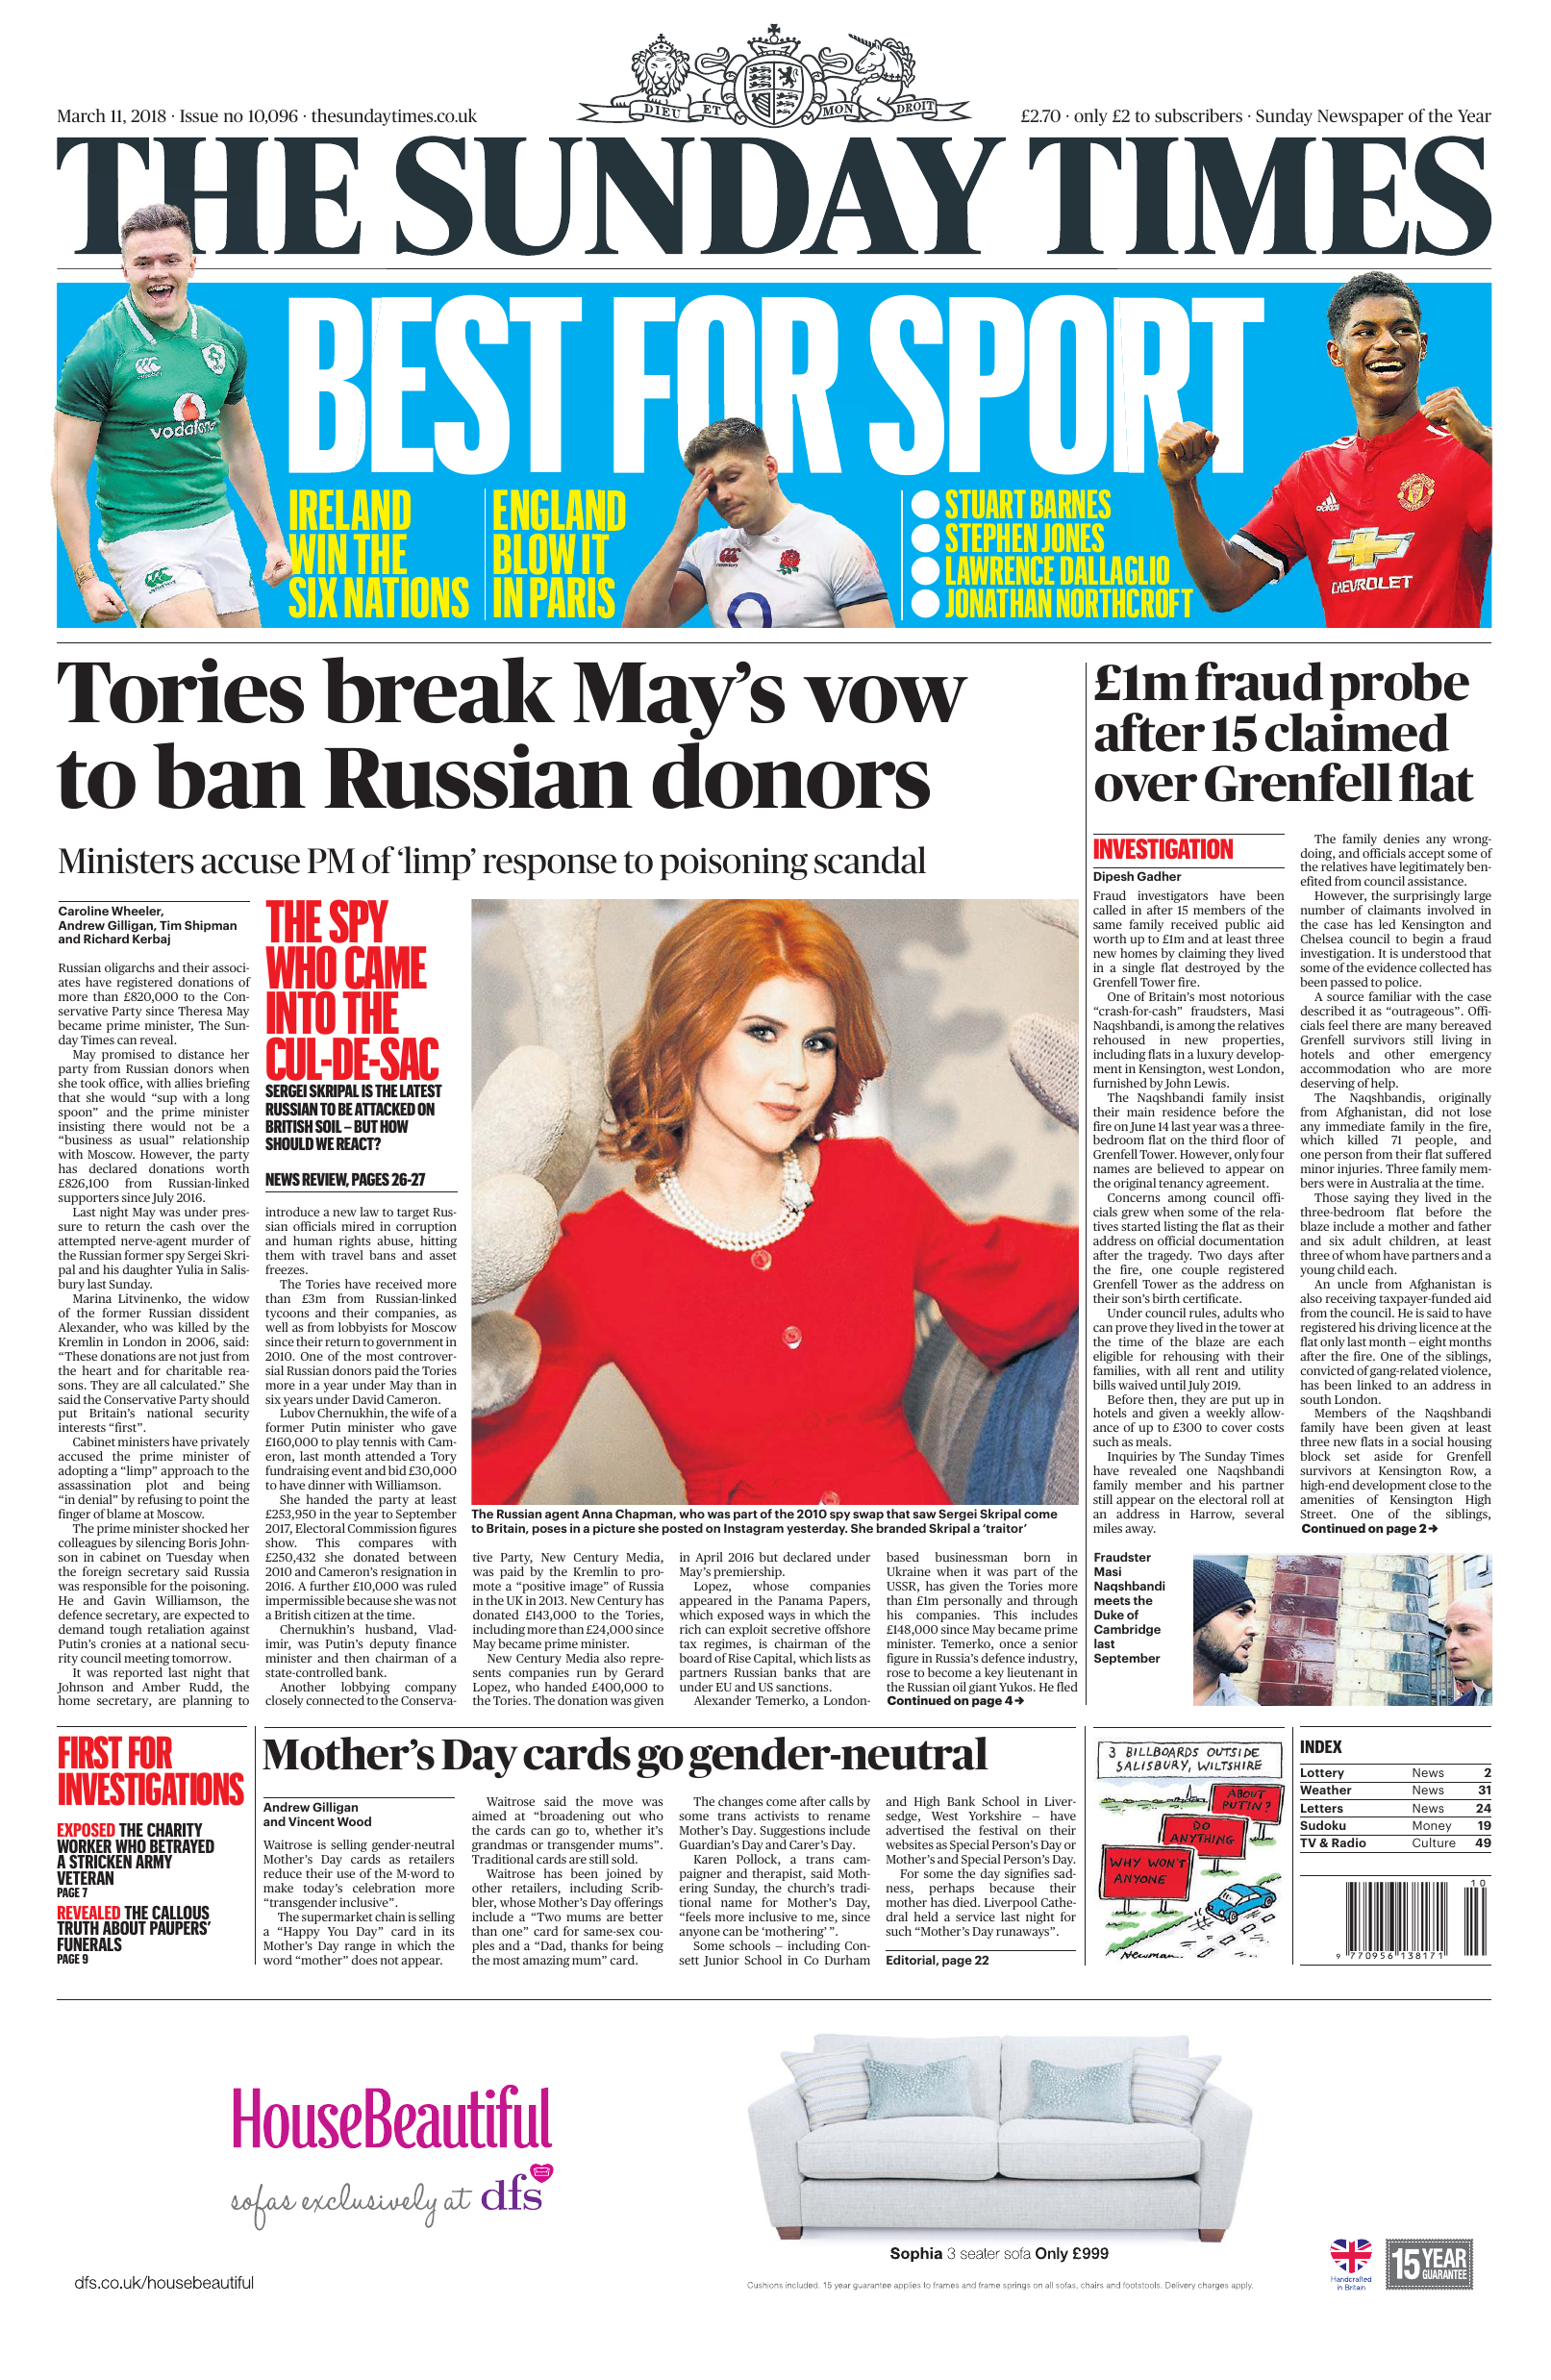 b7fec46052 The Sunday Times UK - 11 March 2018